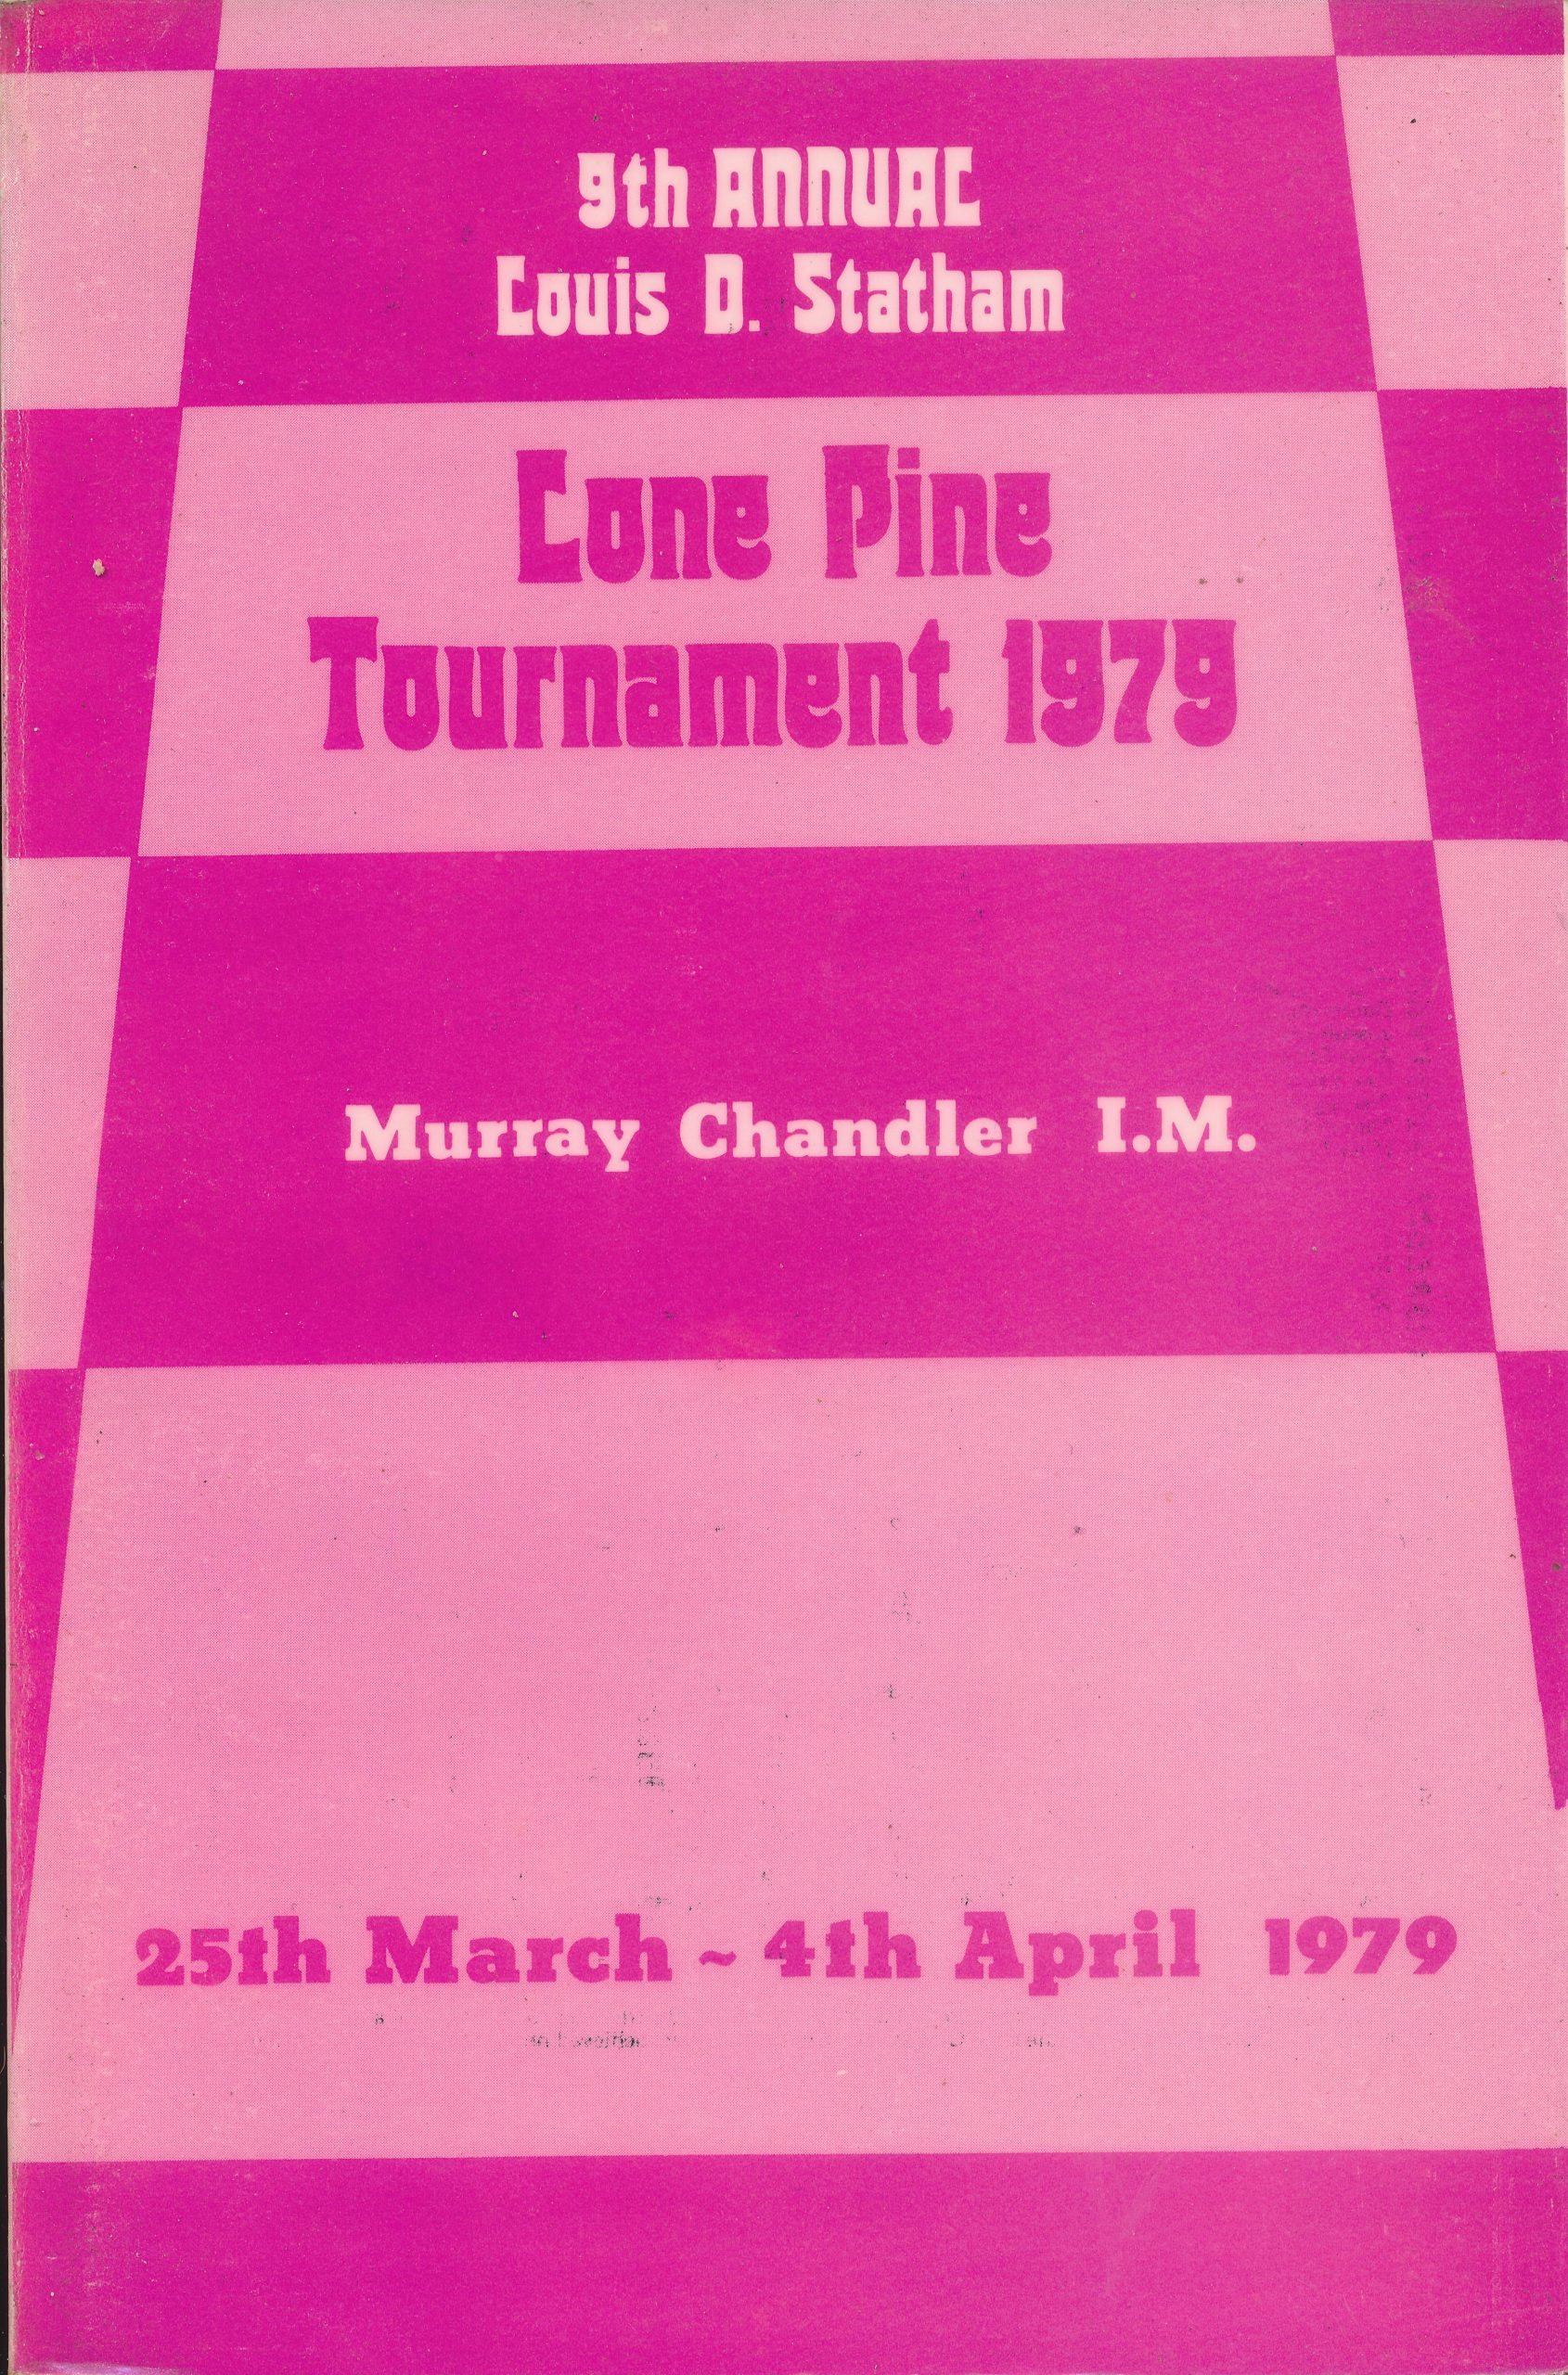 Lone Pine Tournament 1979, Murray Chandler, Master Chess Publications, 1979